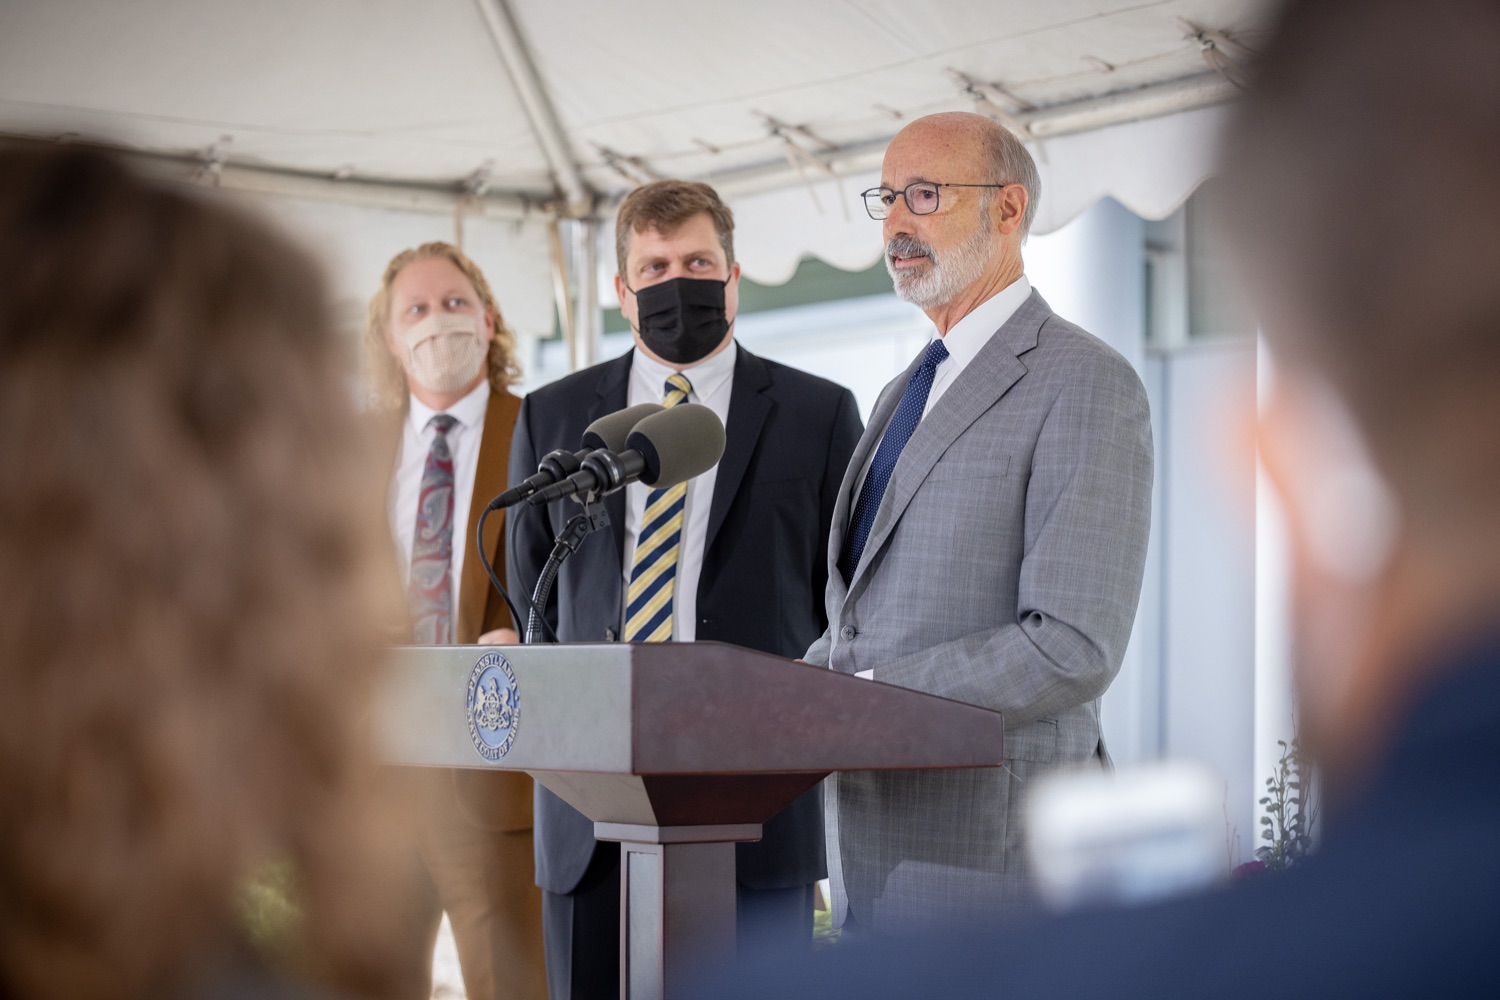 """<a href=""""https://filesource.wostreaming.net/commonwealthofpa/photo/20138_gov_BioTechniqueRibbon_dz_004.JPG"""" target=""""_blank"""">⇣Download Photo<br></a>Pennsylvania Governor Tom Wolf speaking with the press.  Governor Tom Wolf today joined BioTechnique CEO John Clapham, the Department of Community and Economic Developments (DCED) Governors Action Team (GAT), York County Economic Alliance CEO Kevin Schreiber, and local officials at the ribbon cutting ceremony for BioTechniques new pharmaceutical manufacturing facility in York County.   OCTOBER 12, 2021 - YORK, PA"""